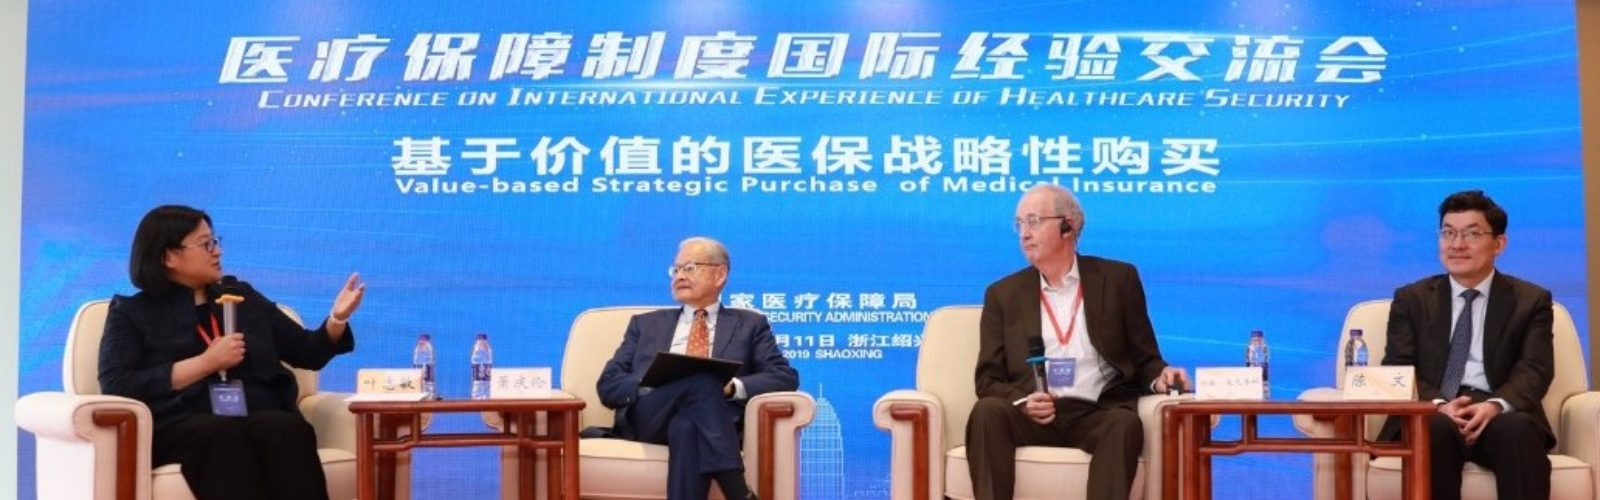 International Forum on Value Health Care Purchasing organized by the National Healthcare Security Administration, China